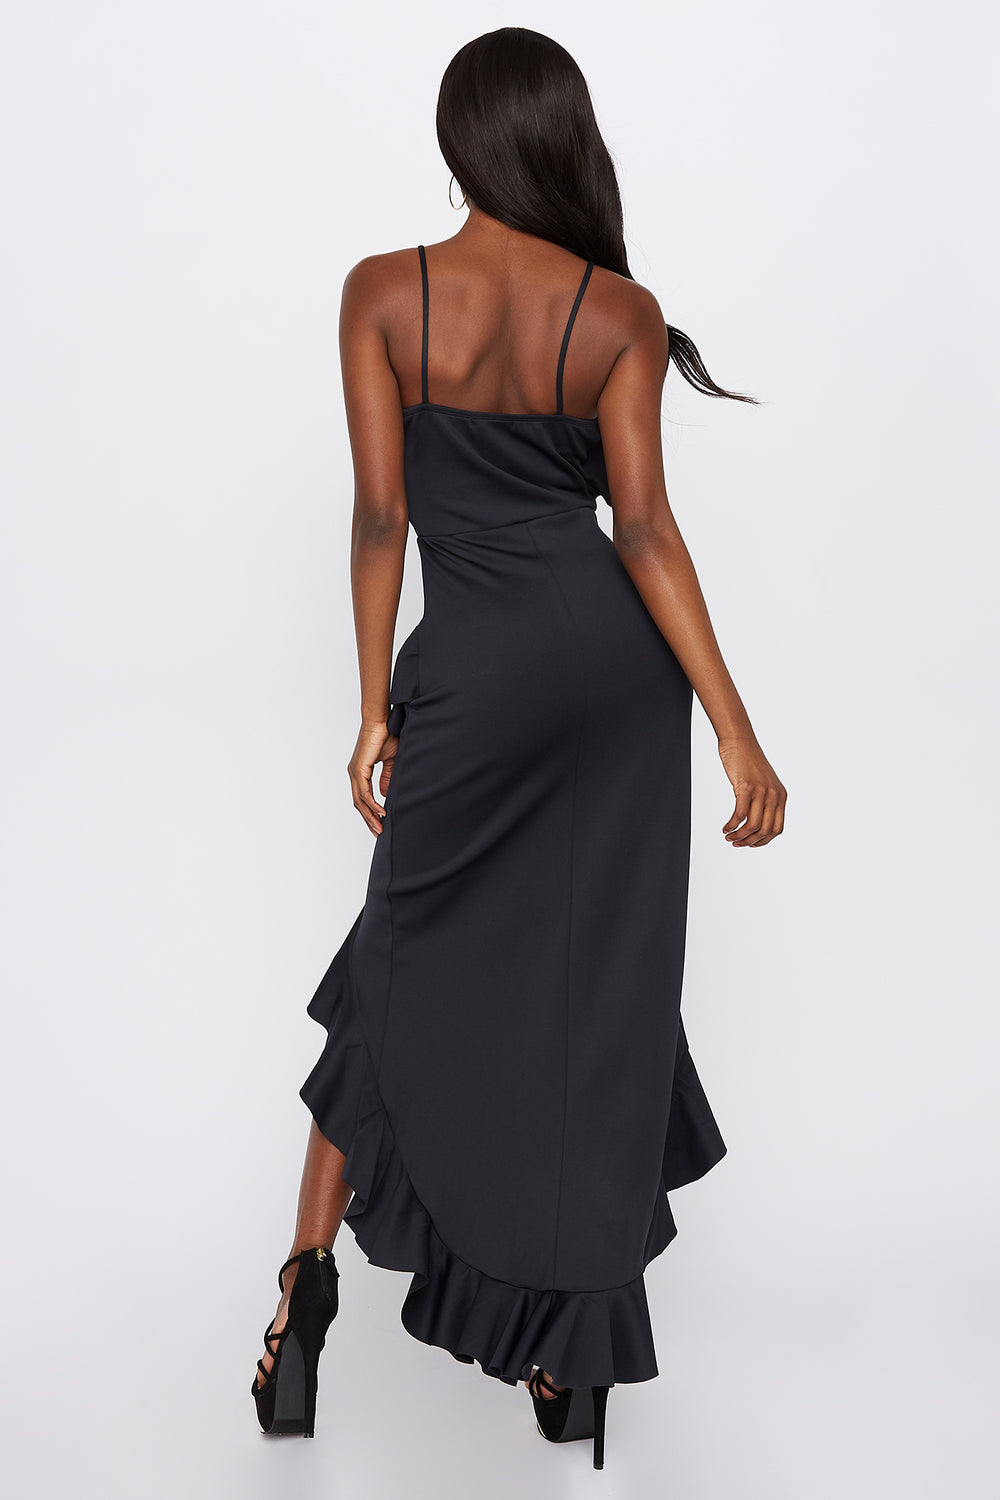 Scuba Asymmetrical Ruffle Hem High-Low Dress Black